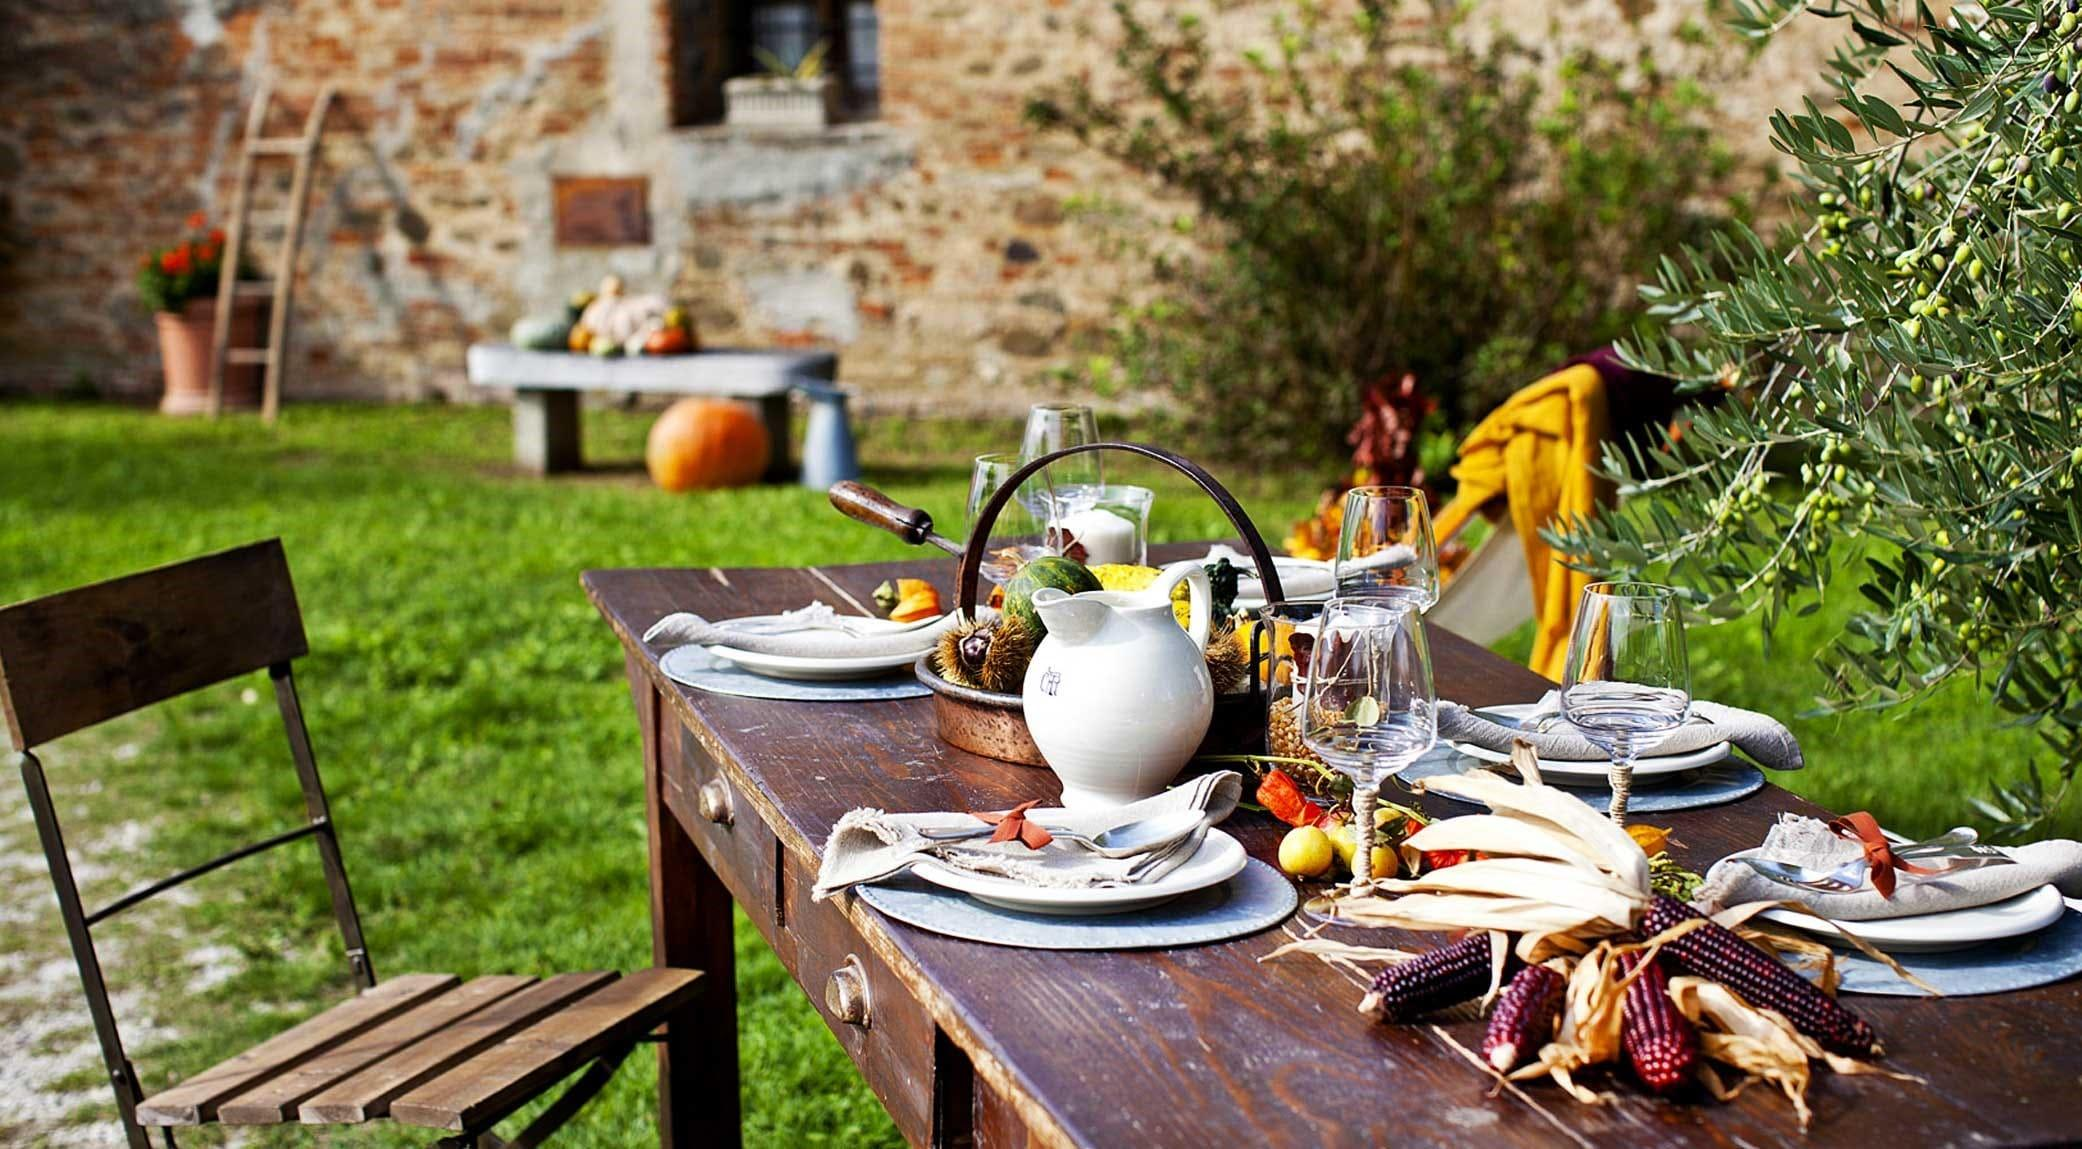 original_002-tuscany-finedininglovers.jpg